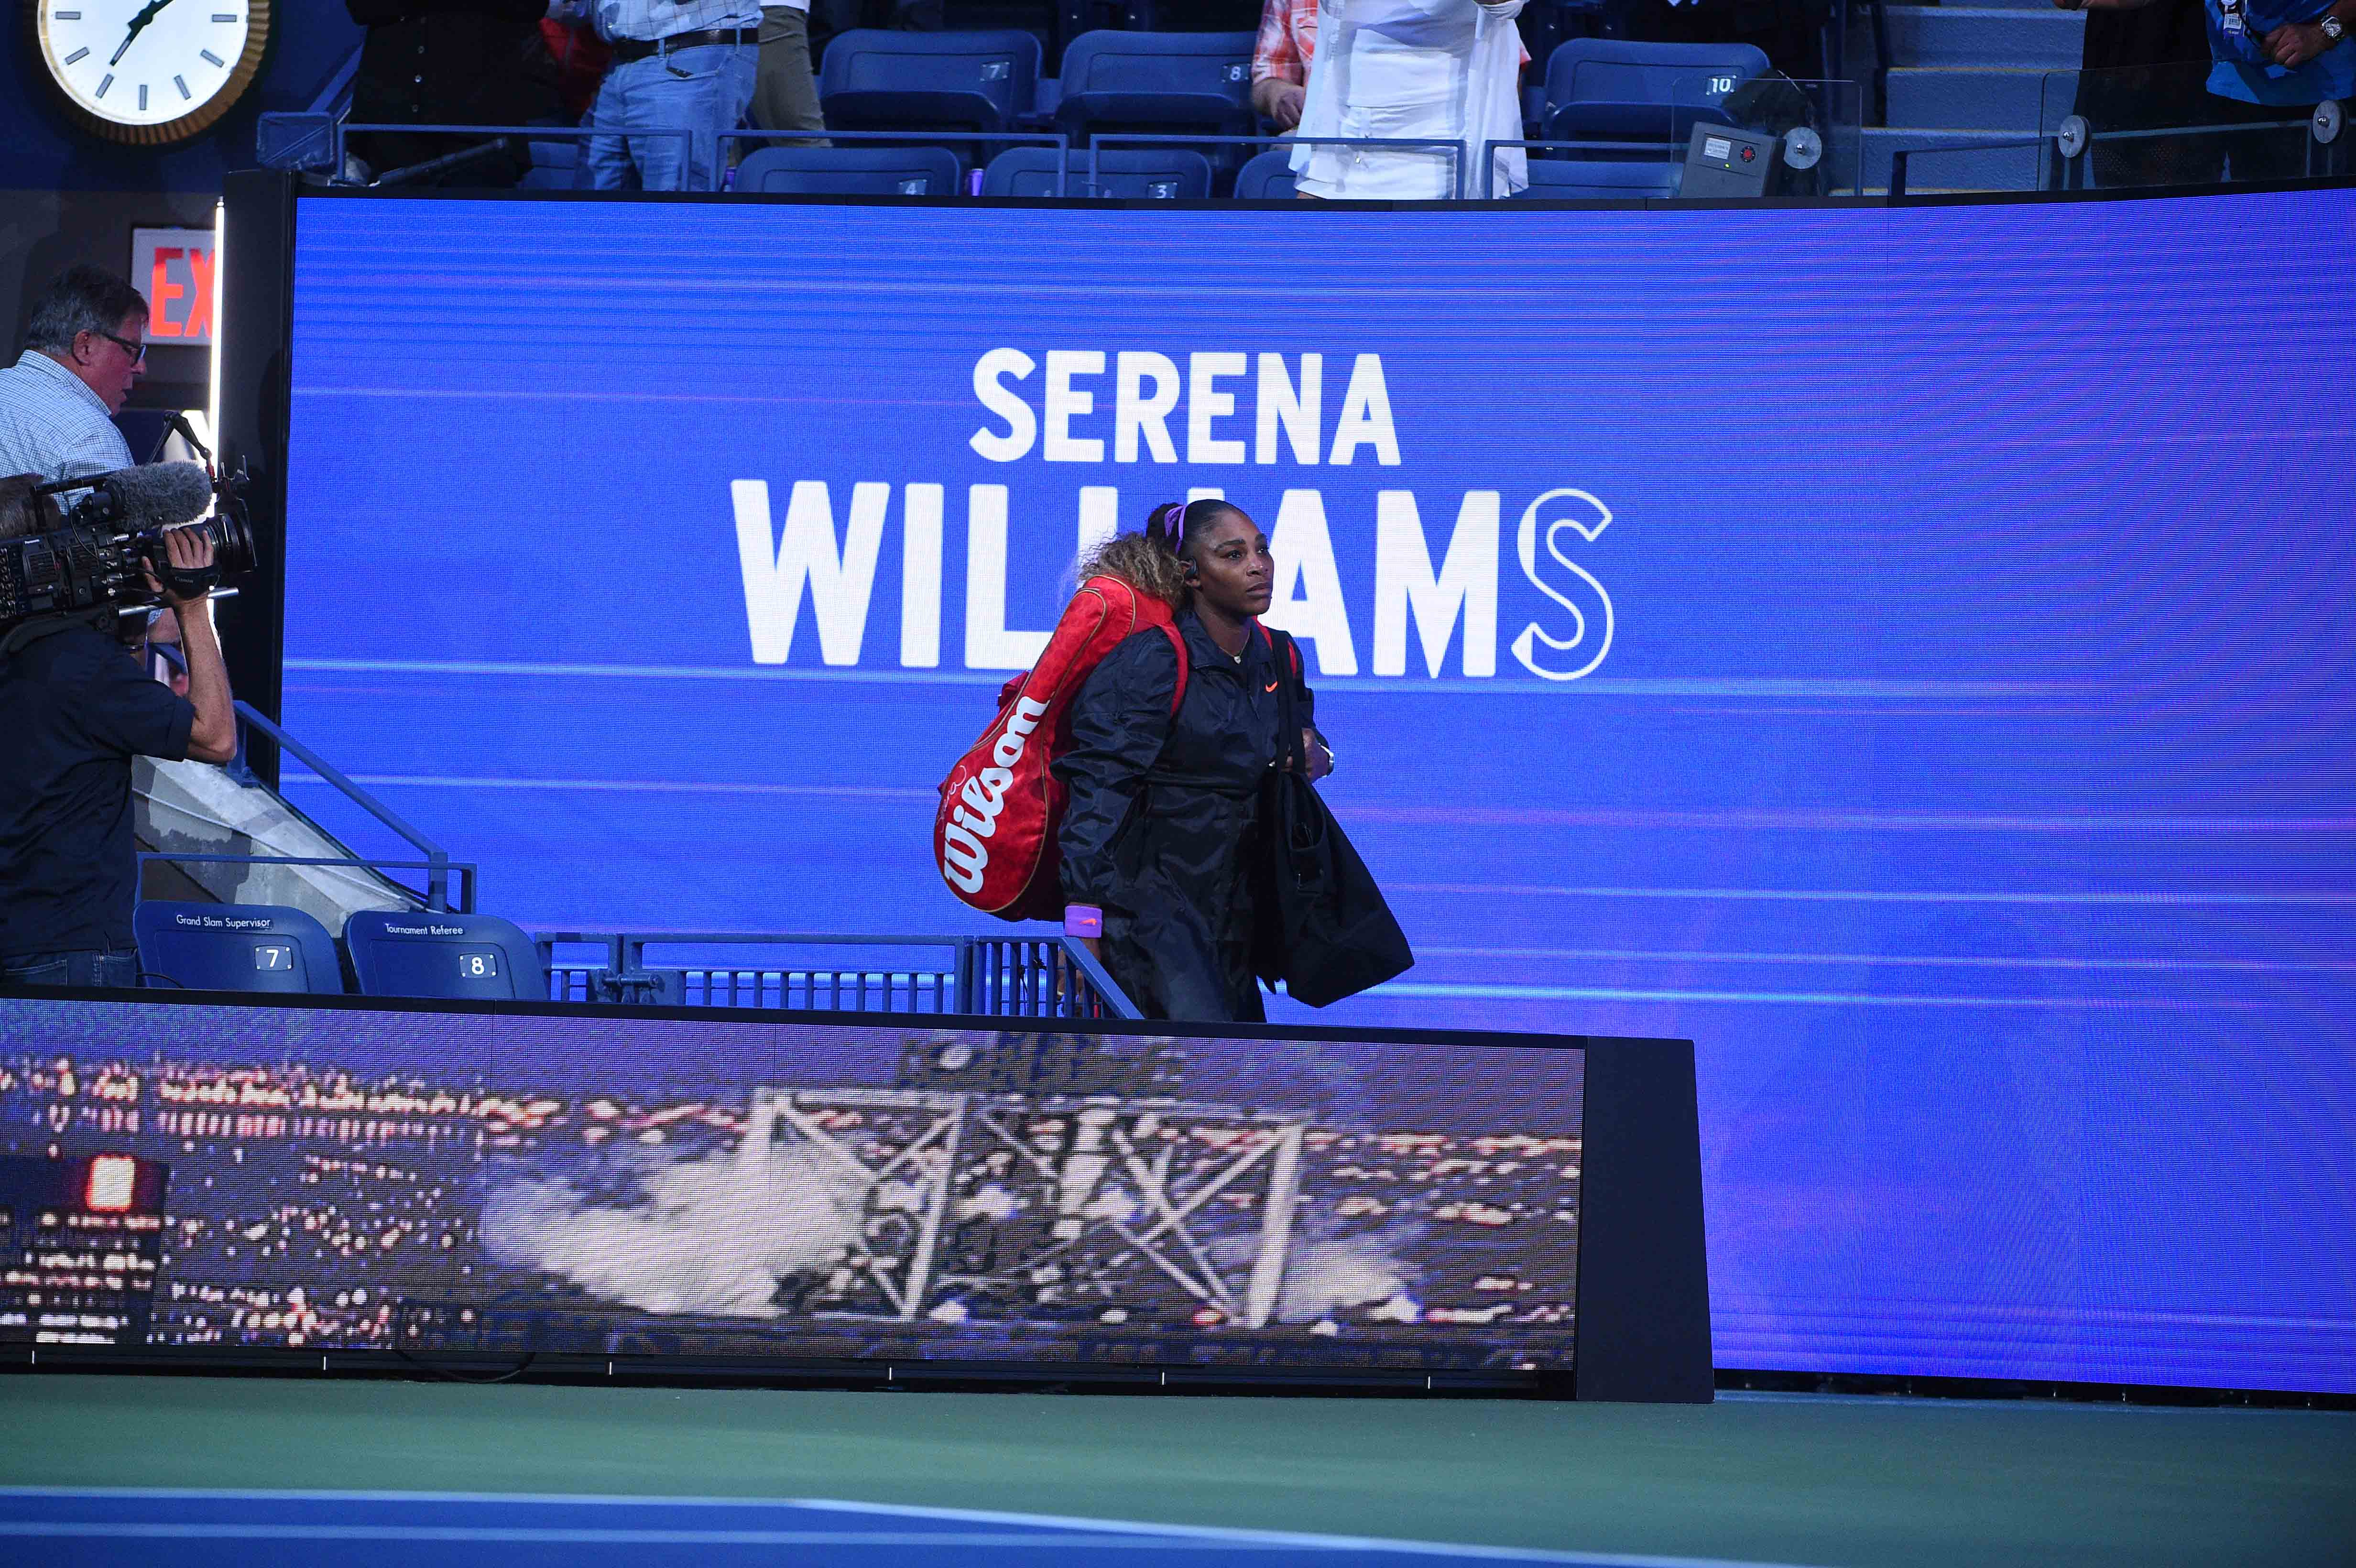 Serena Williams walking on the court at the 2019 US Open